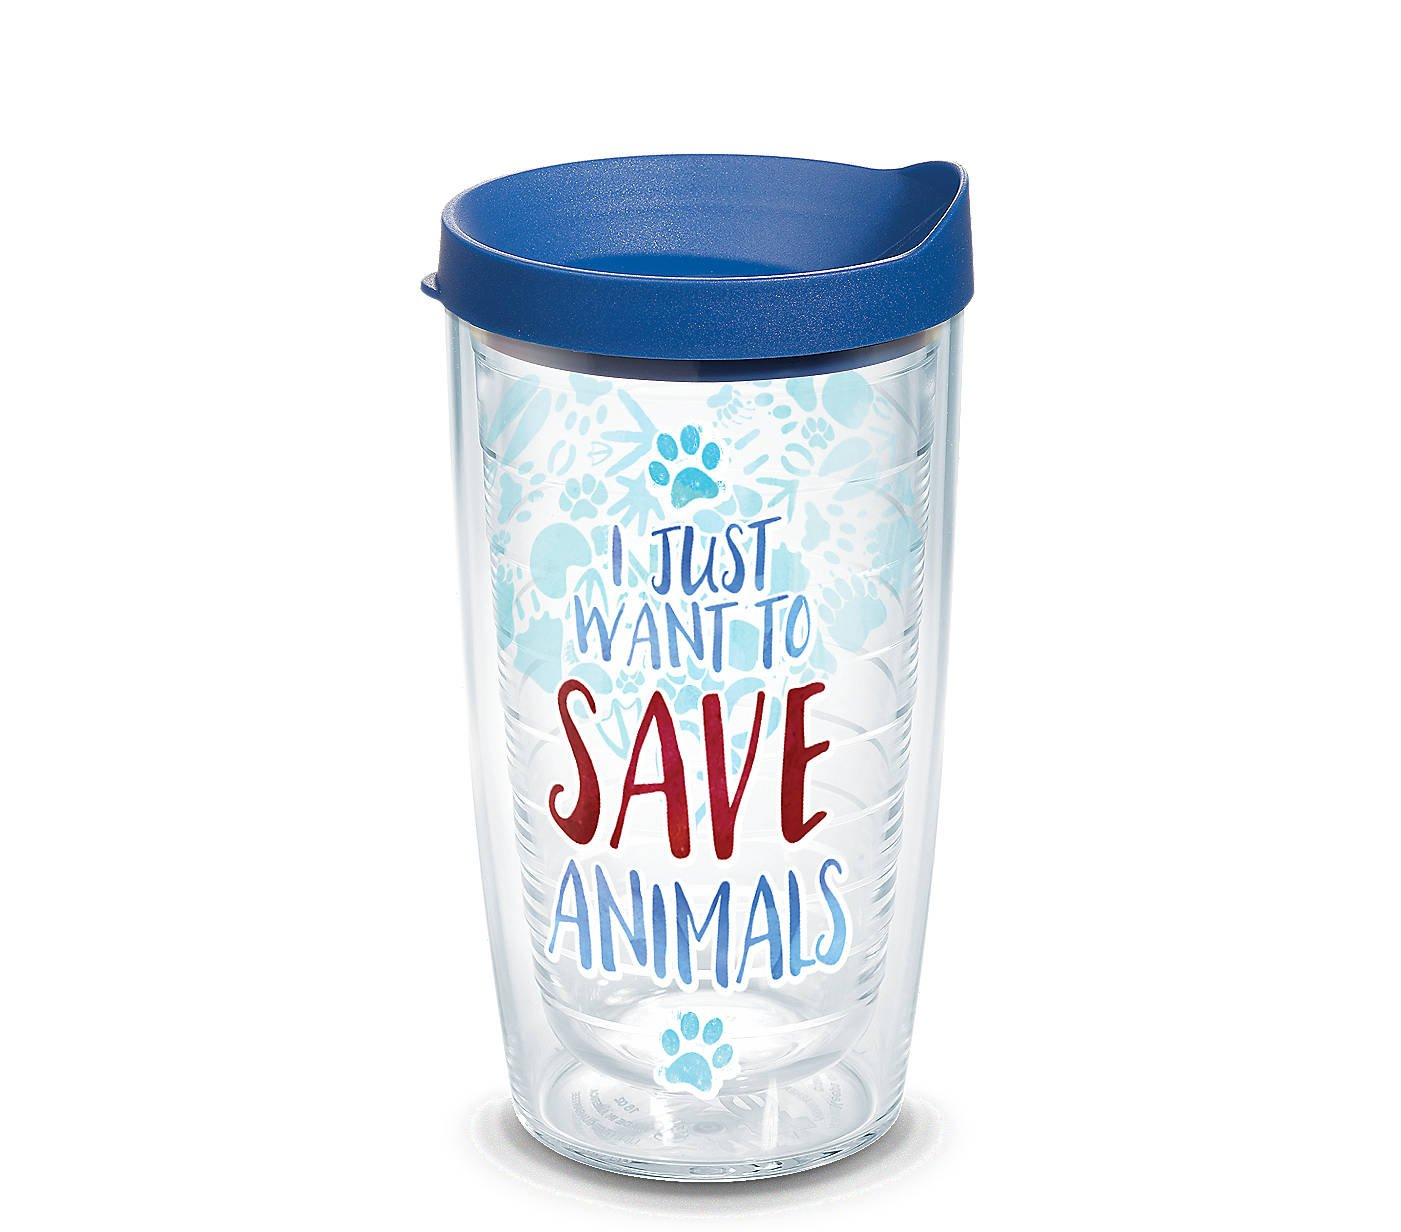 Tervis 1247354 Save Animals Tumbler with Wrap and Blue Lid 16oz, Clear